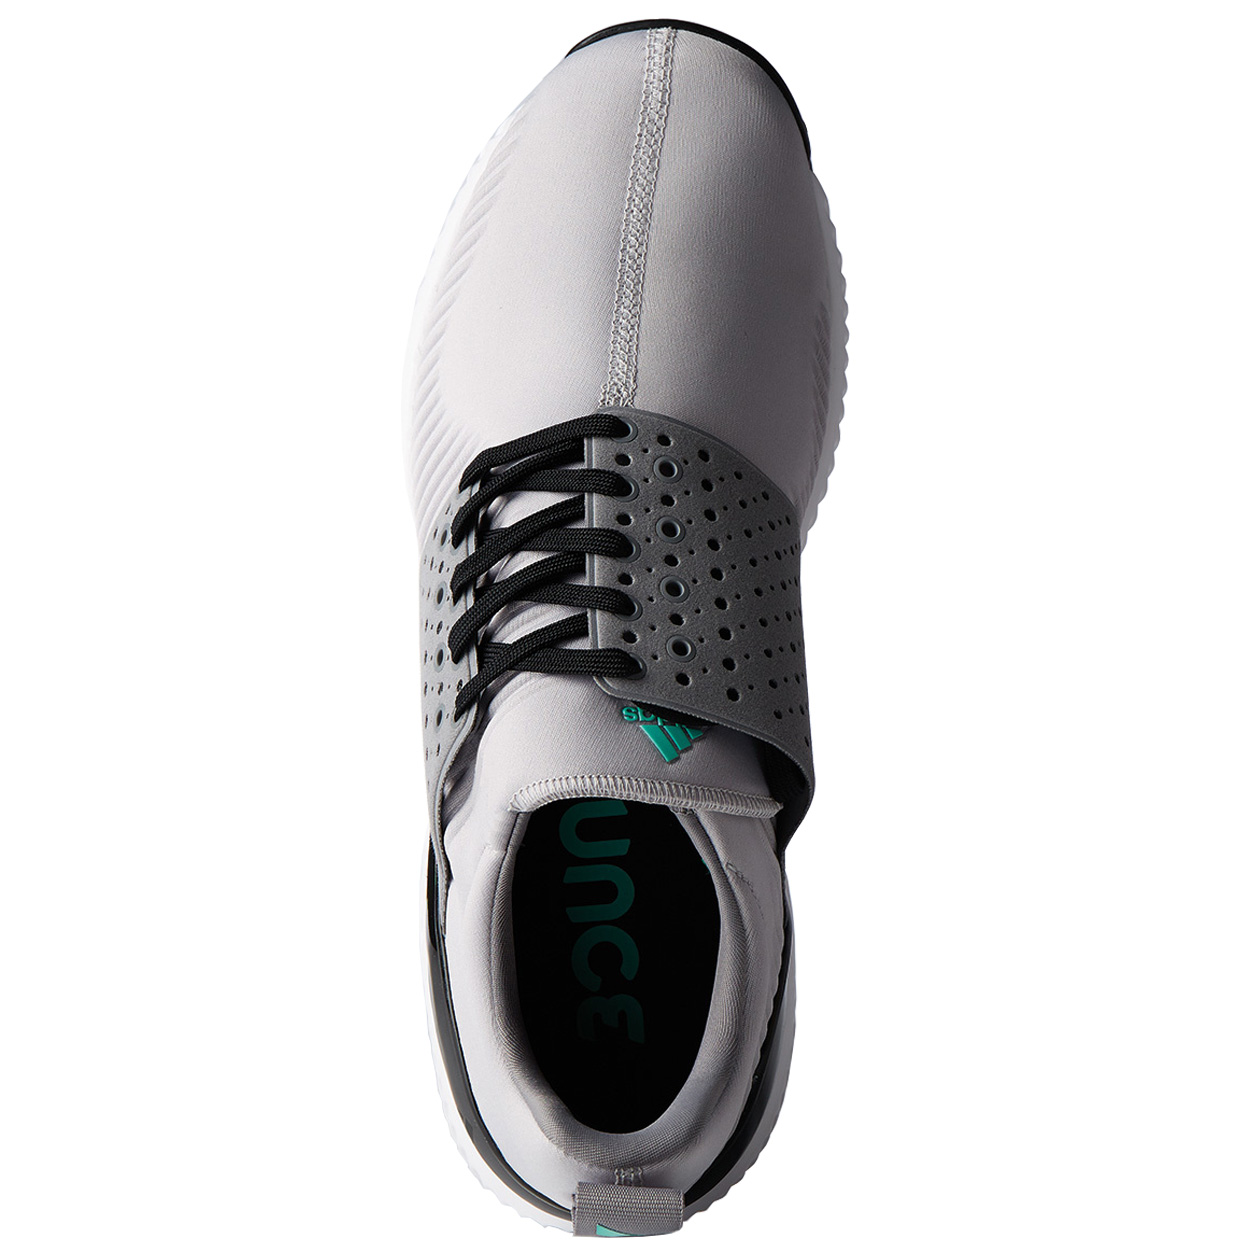 Adidas-Men-039-s-Adicross-Bounce-Golf-Shoes-New thumbnail 12